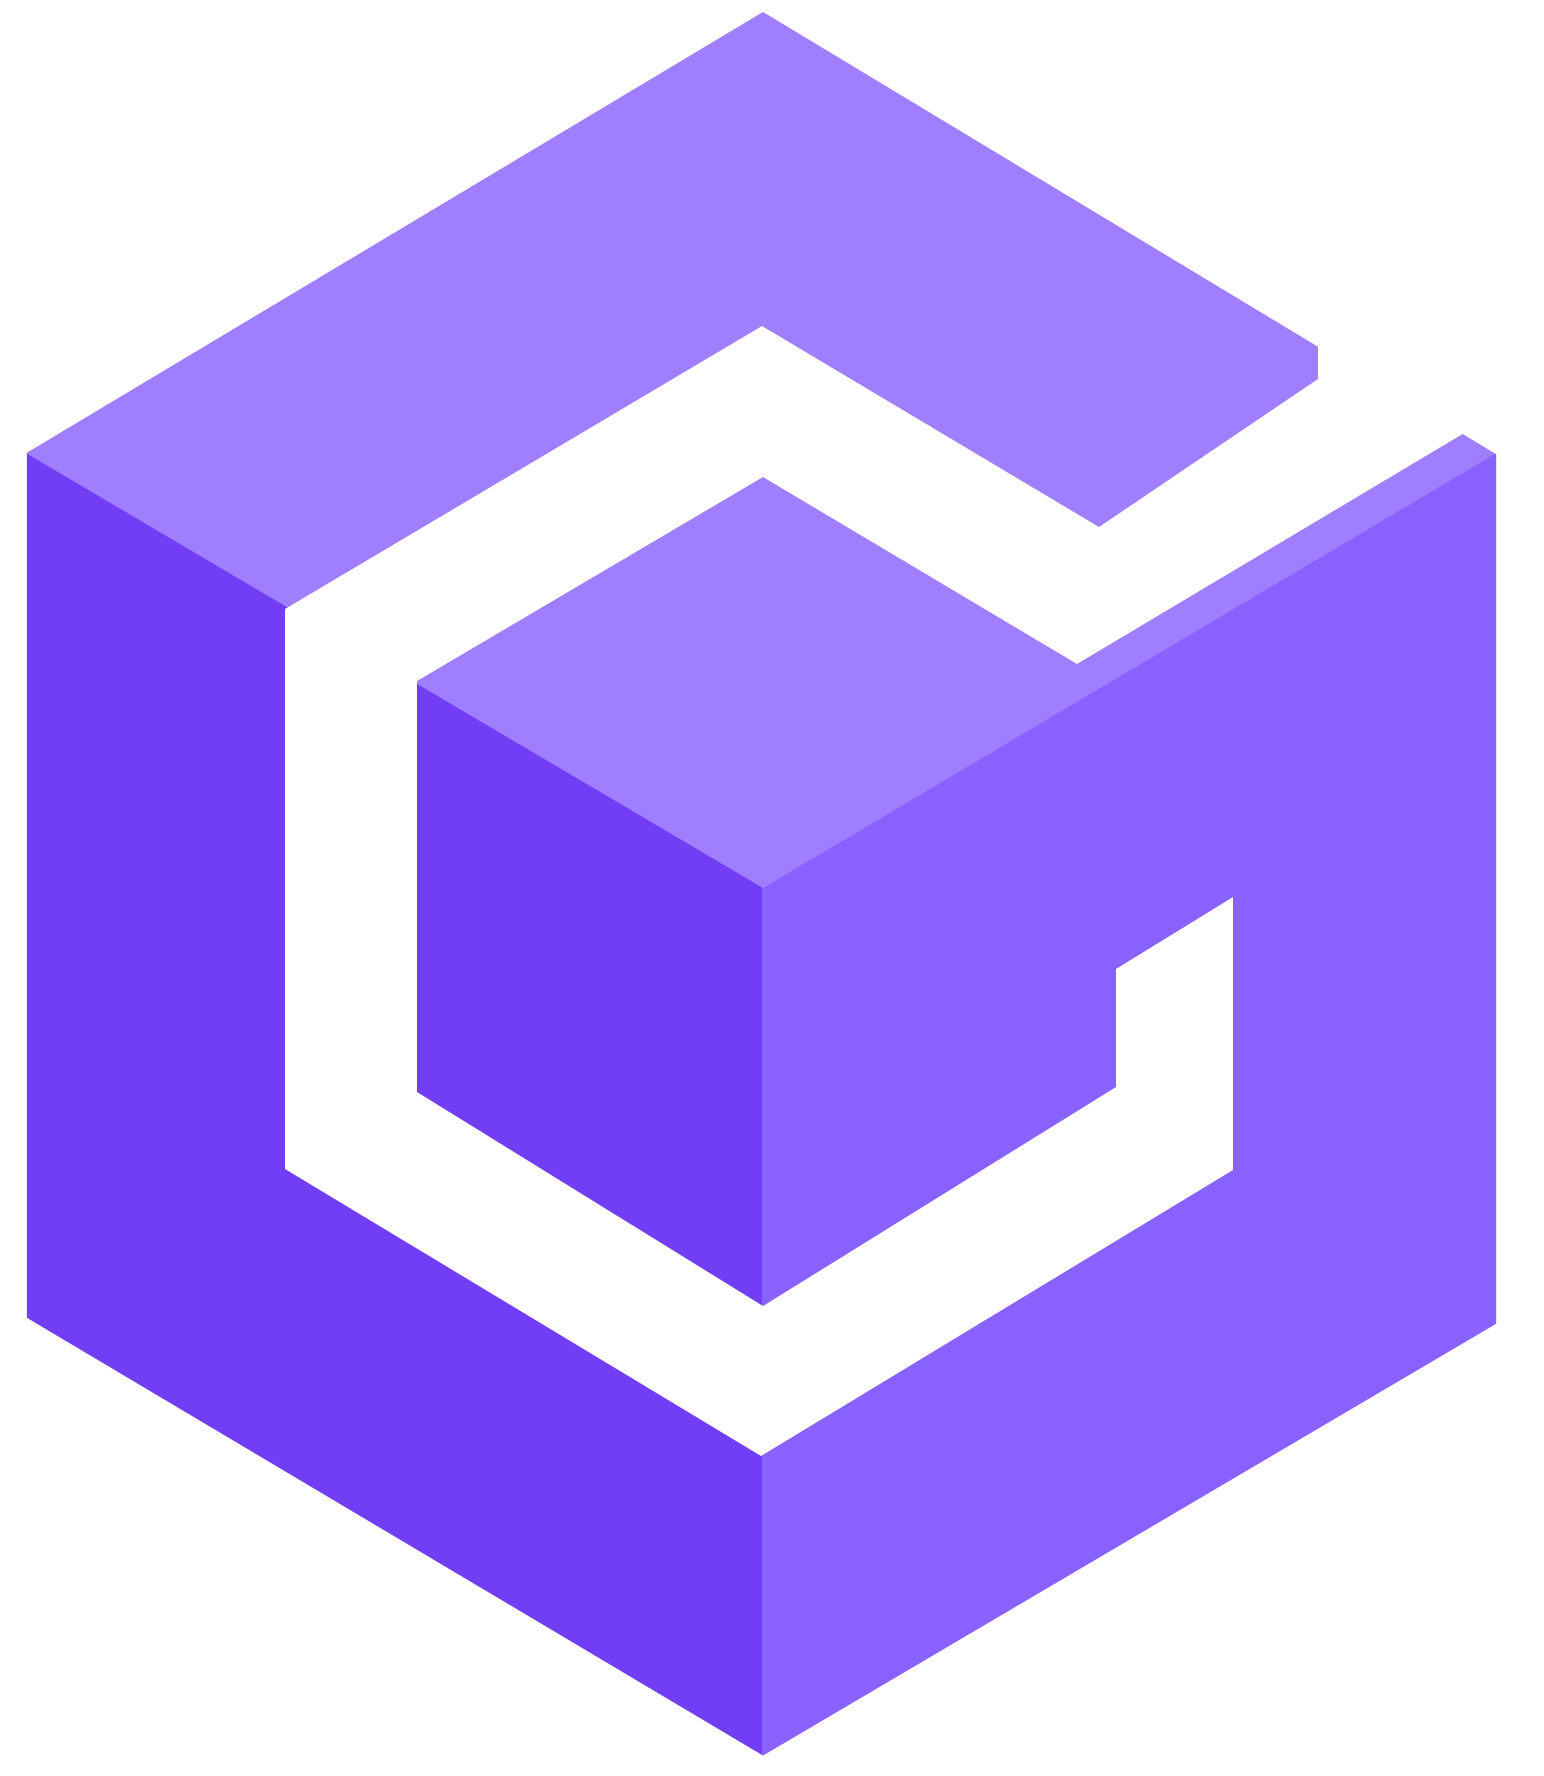 Gamecube logo png. Images of spacehero